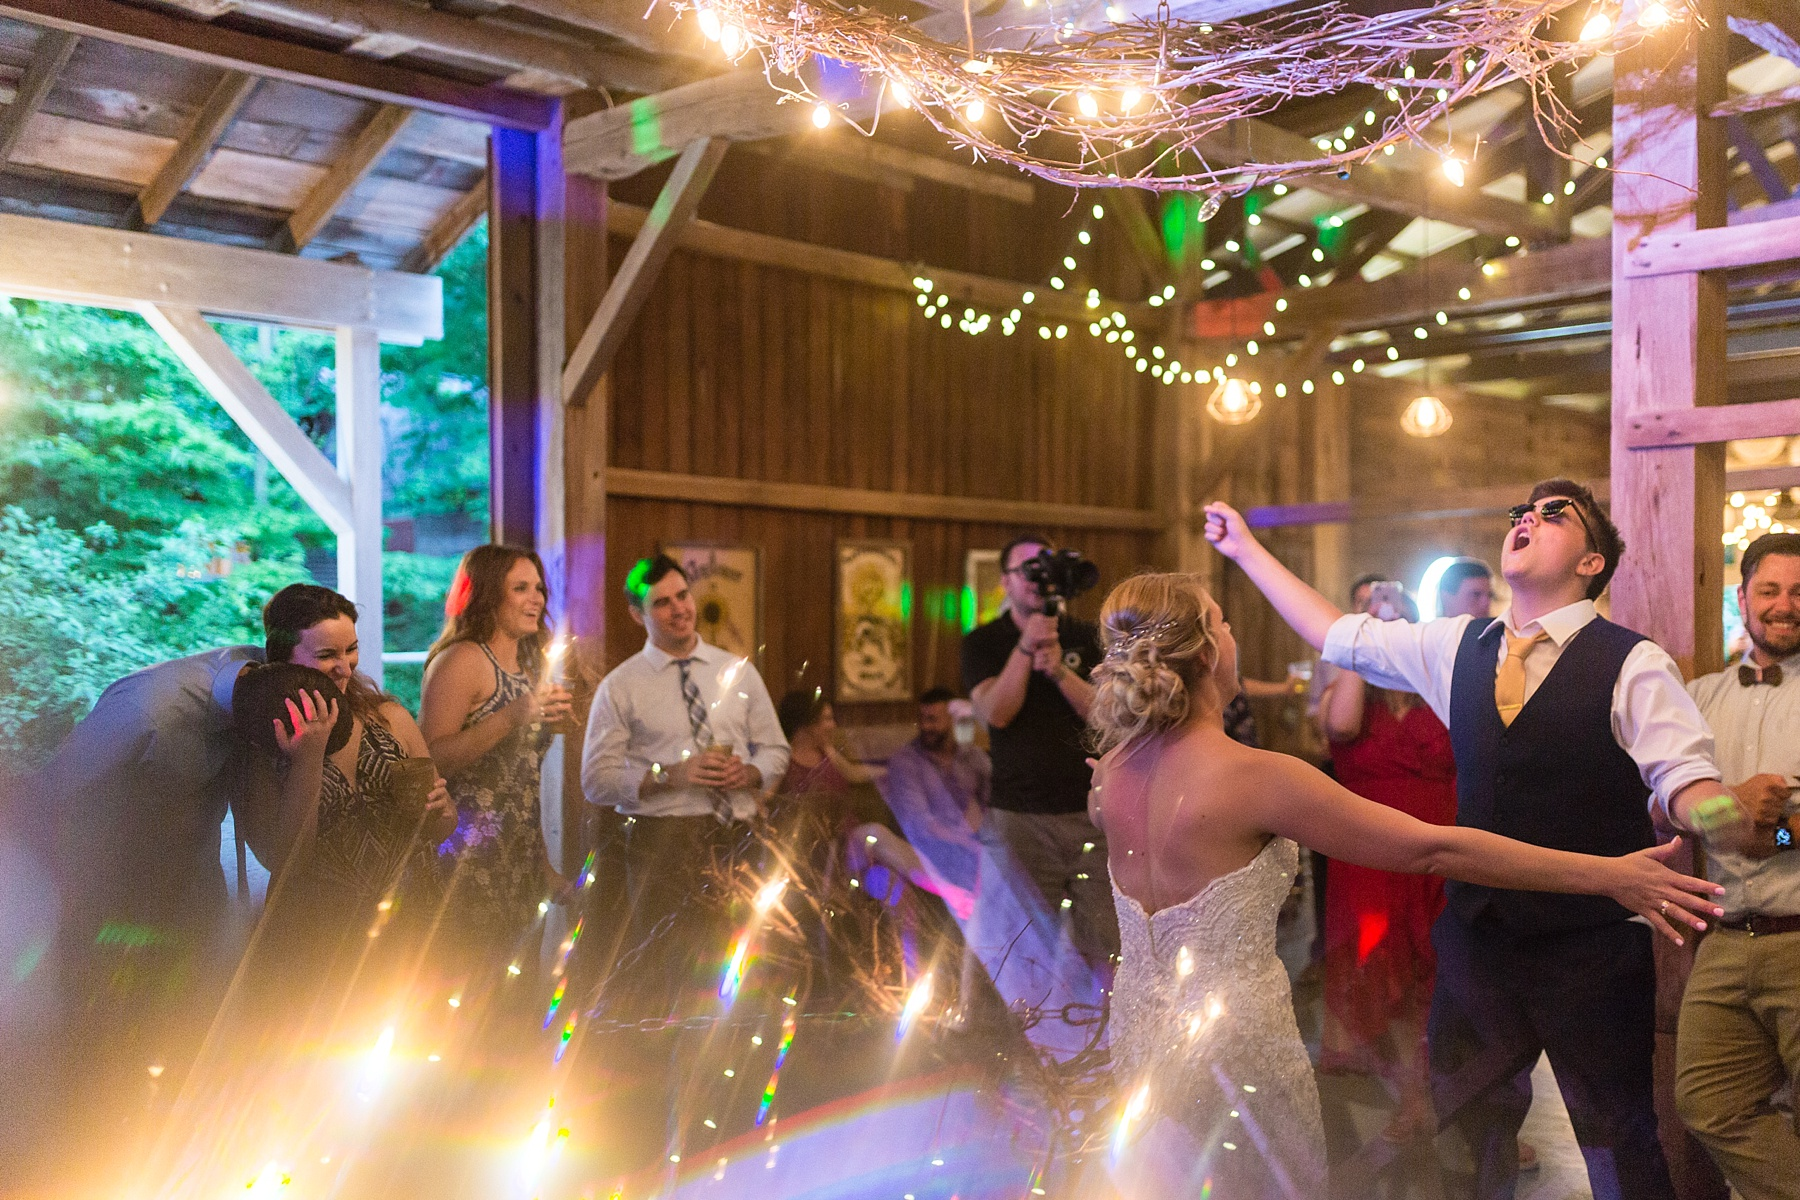 Brandon_Shafer_Photography_Millcreek_Wilde_Barn_Wedding_0054.jpg